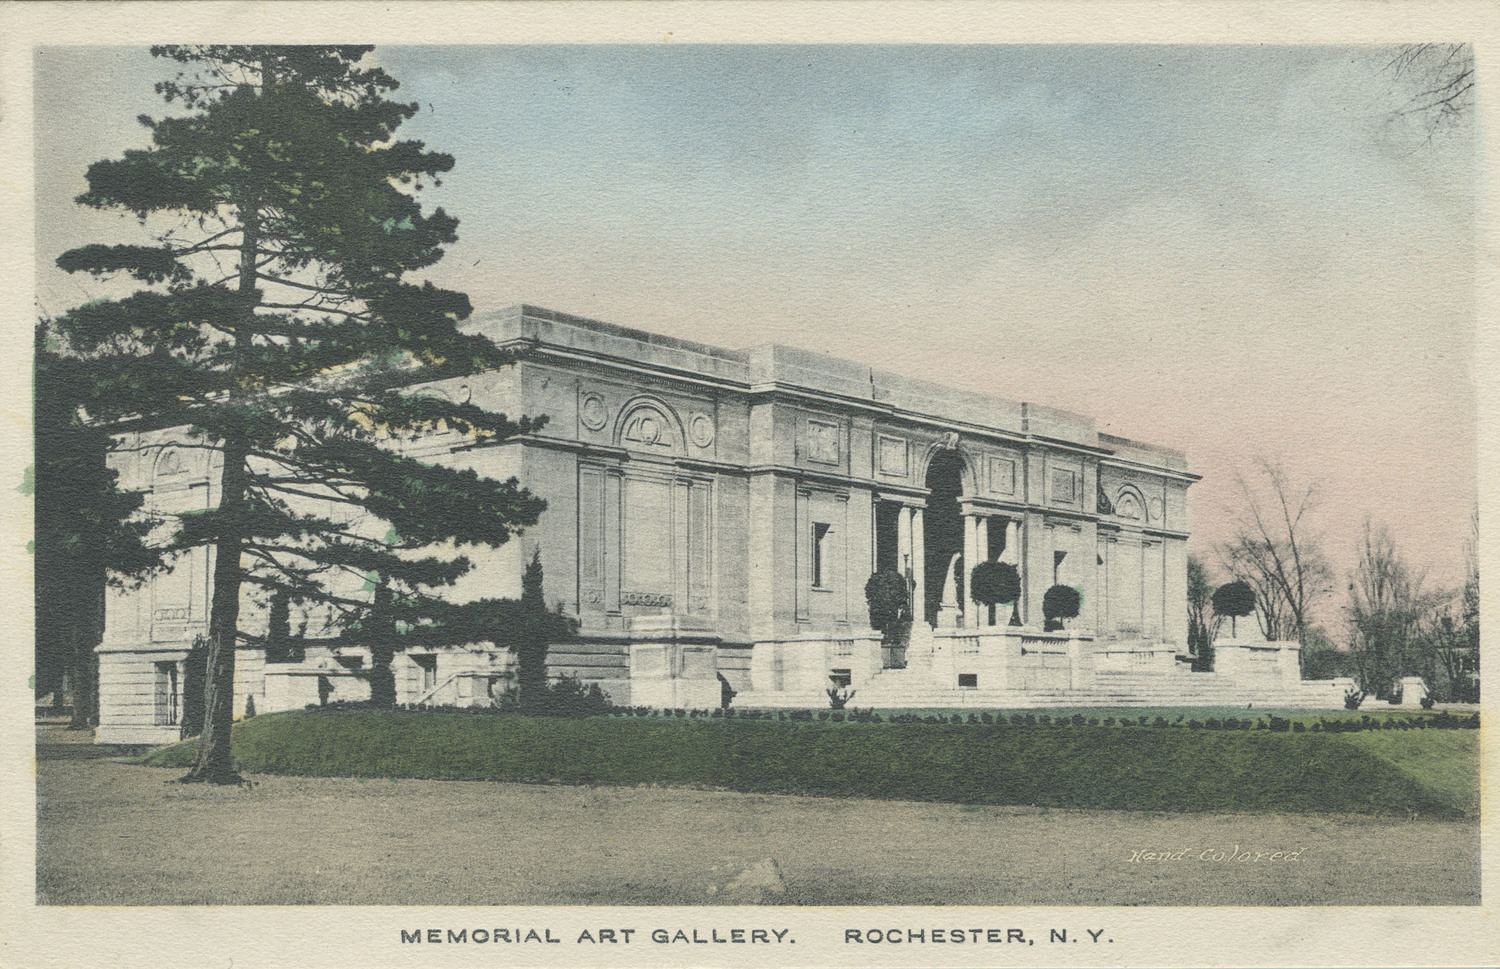 Memorial Art Gallery. Rochester N.Y.